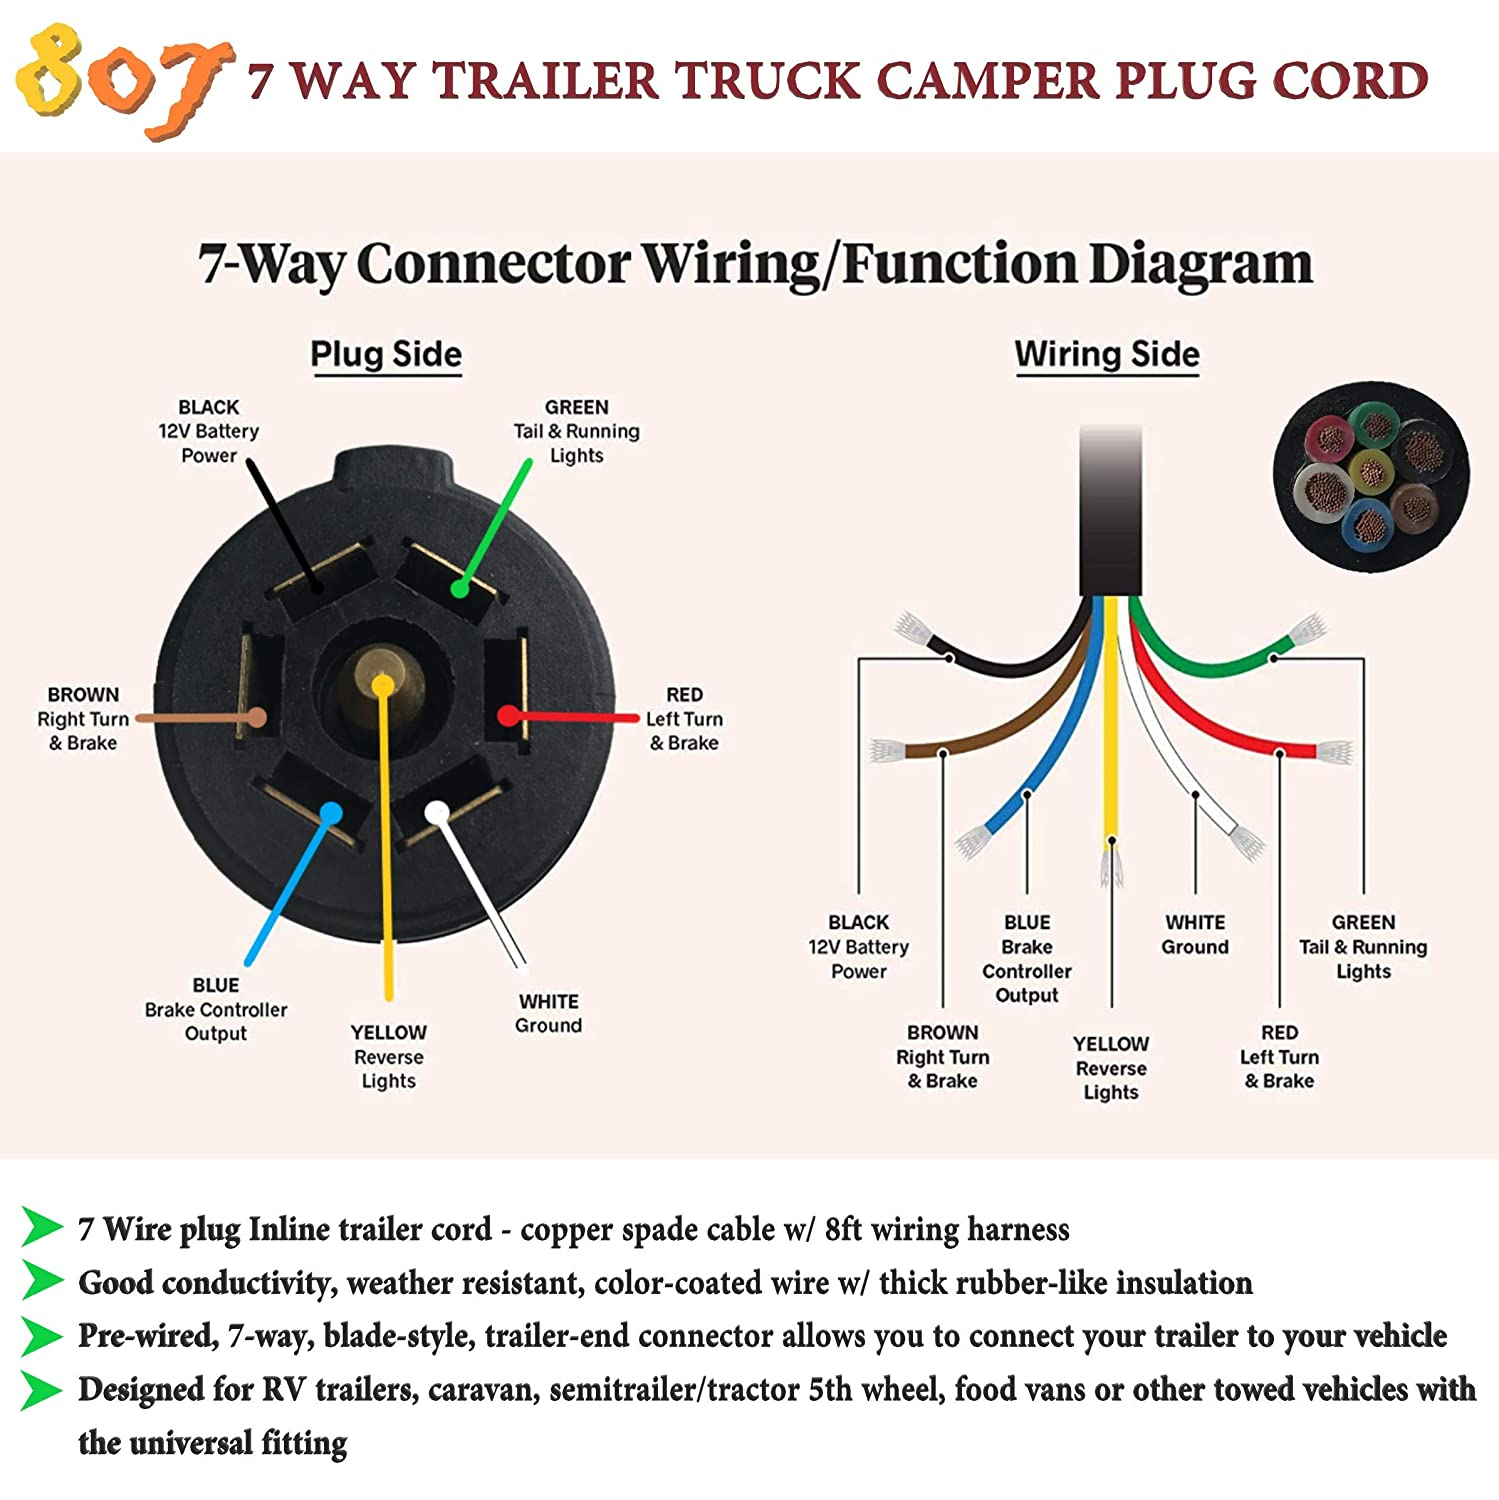 7 Blade Trailer Plug Wiring Diagram - Wiring Diagram Rows on 4 blade trailer wiring diagram, 7 blade rv wiring, 7 blade trailer harness, 7 pin trailer connector diagram, 7 blade trailer wire, 7 blade trailer plug, 7 blade lighting diagram, 6 blade trailer wiring diagram, 7 blade wiring harness, 5 blade trailer wiring diagram,